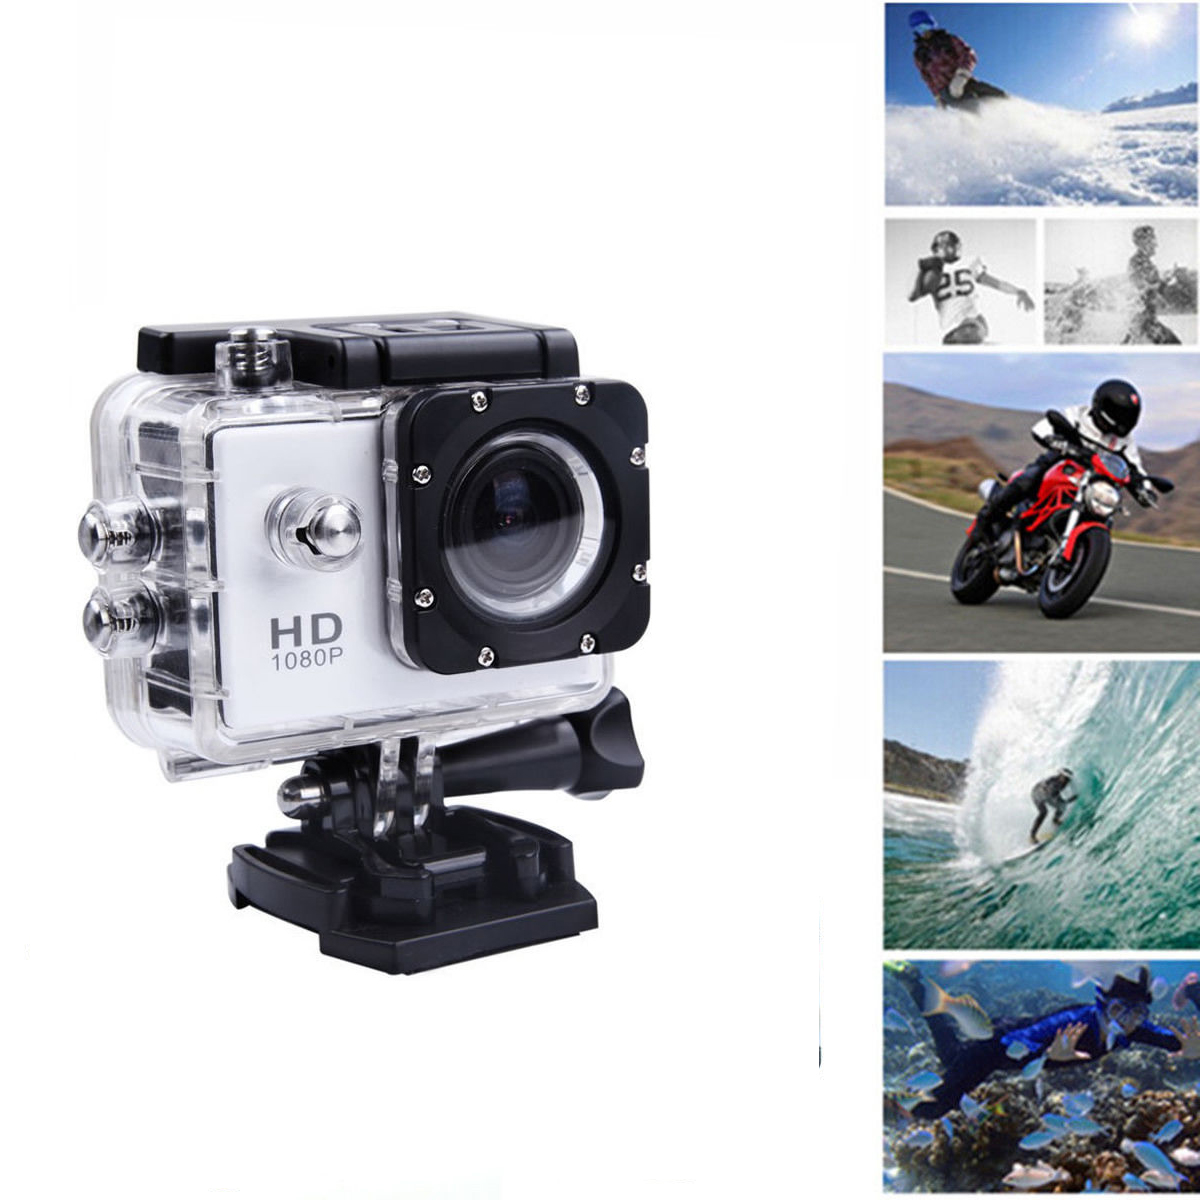 Full HD SJ4000 1080P 12MP Car Cam Sports DV Action Waterproof Camera Camcorders